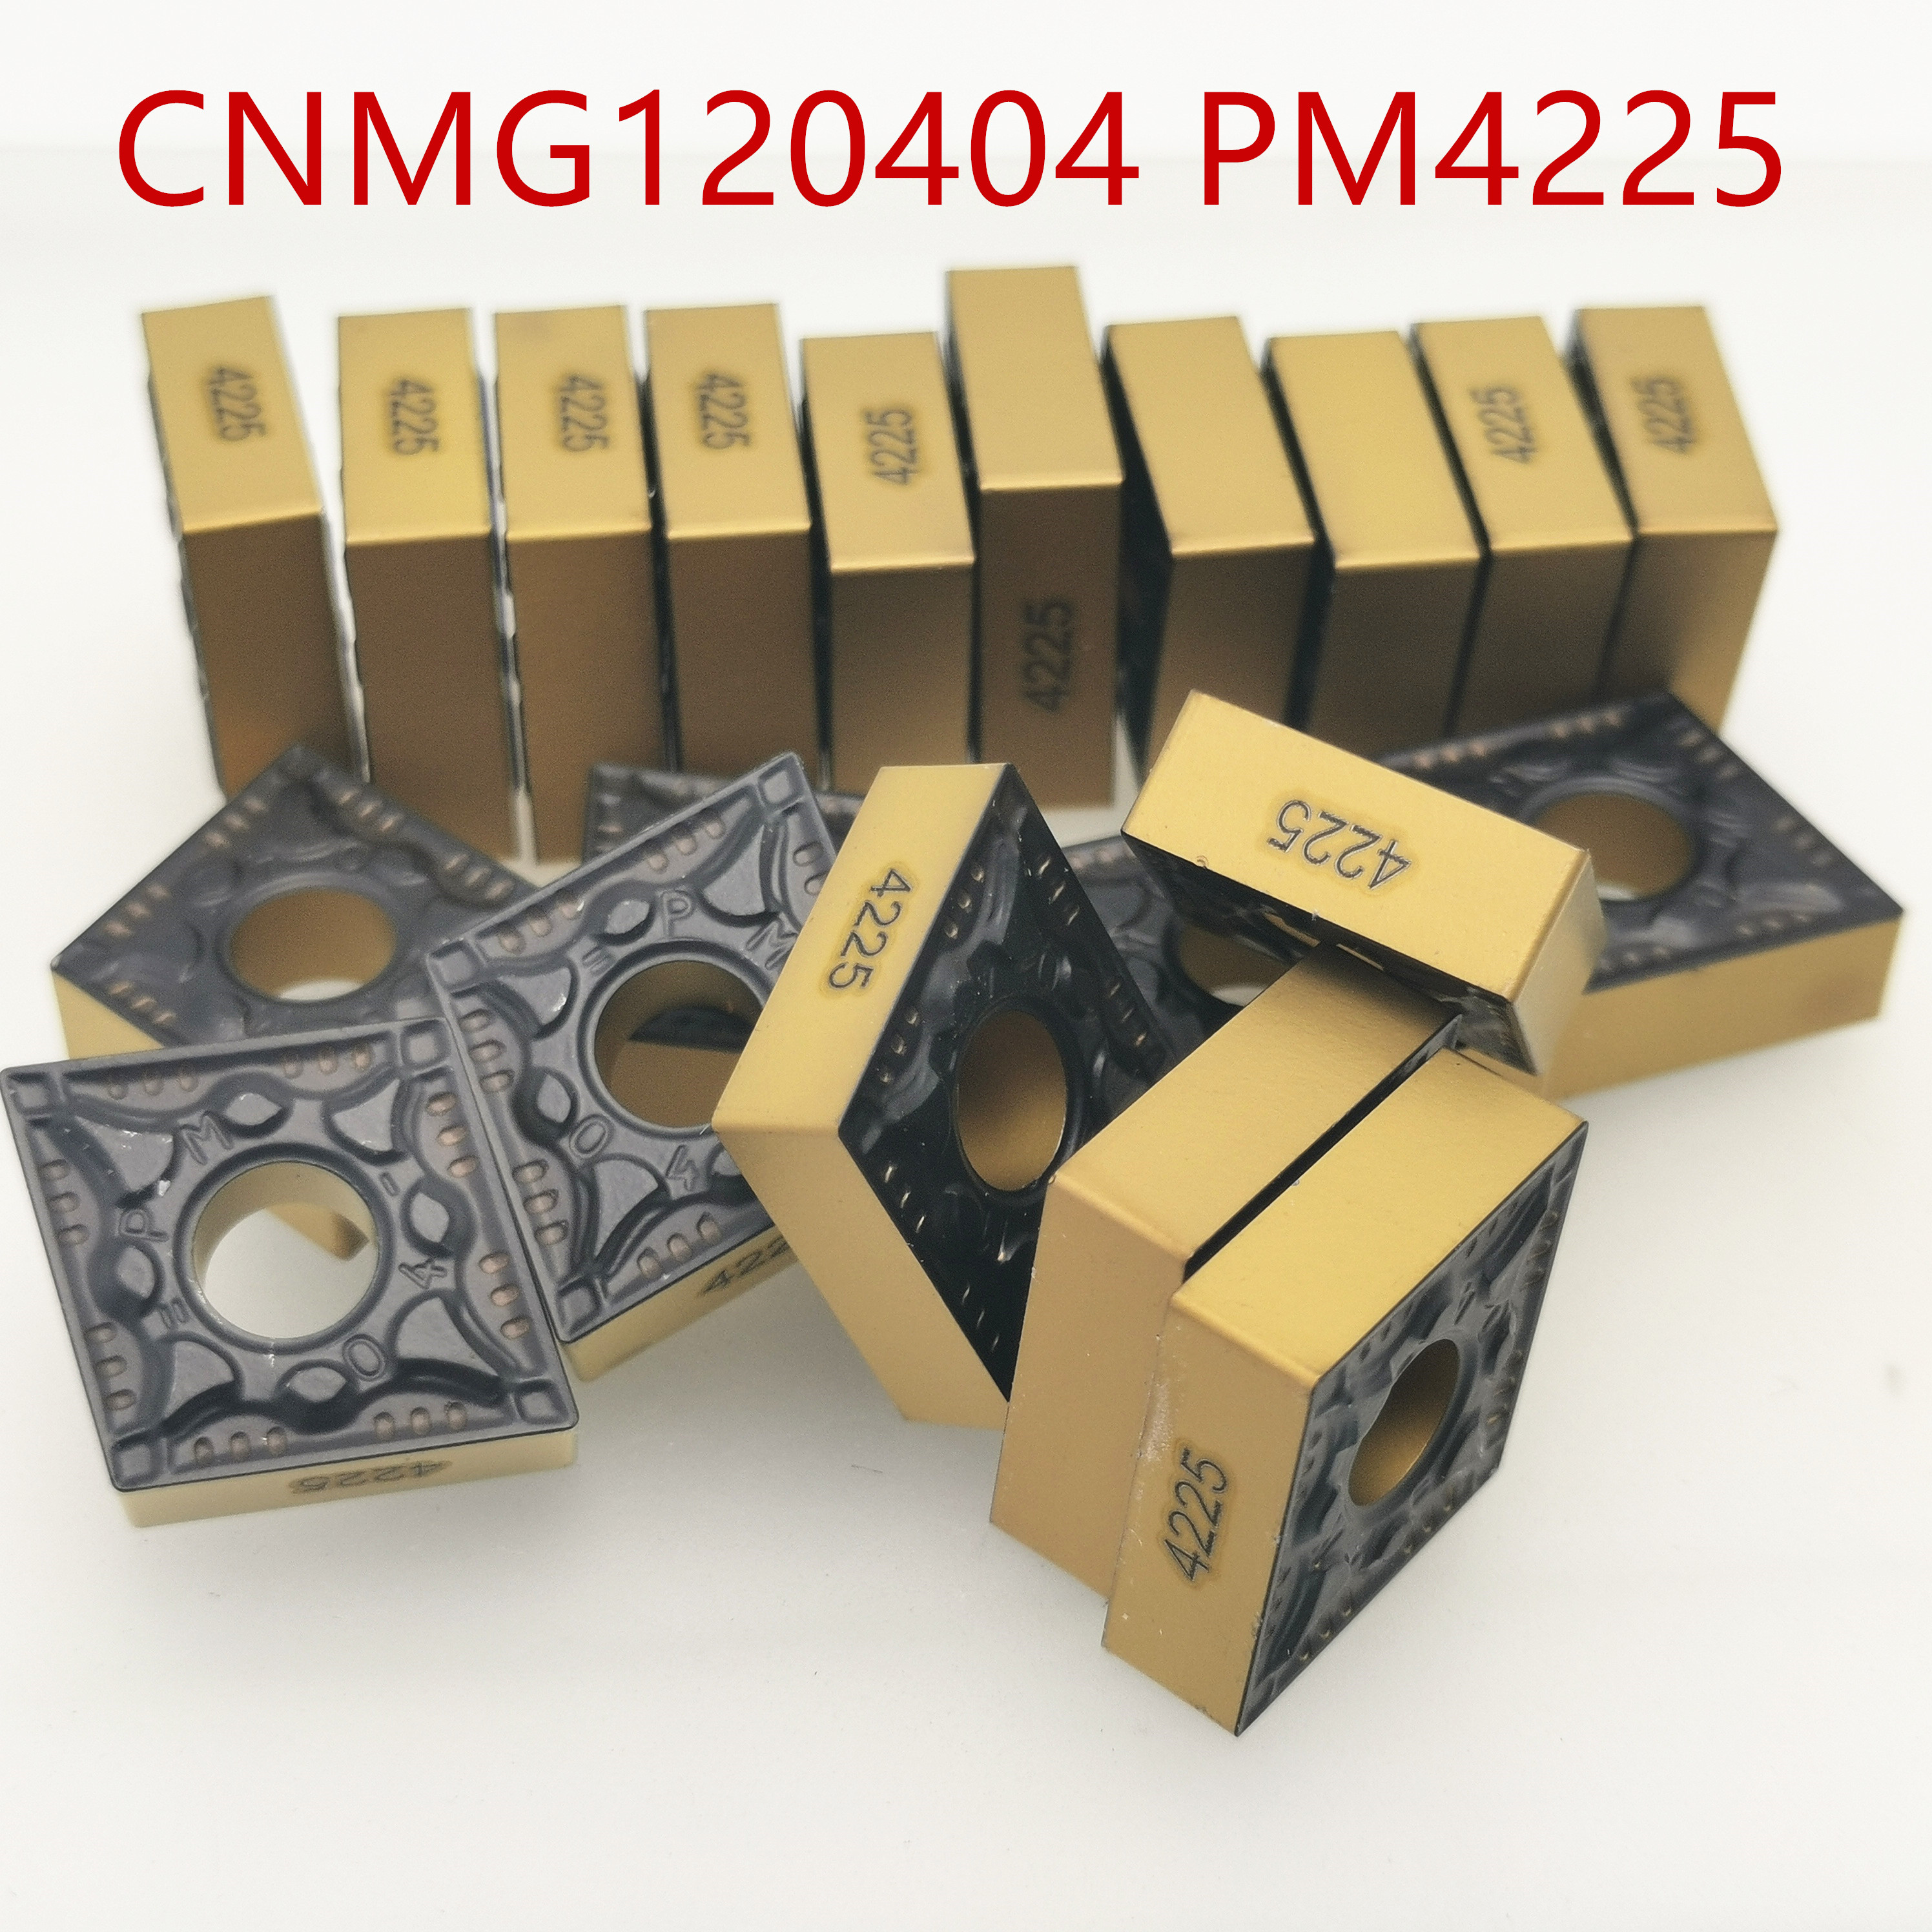 Hard Alloy <font><b>CNMG120404</b></font> PM 4225 External Turning Tools Carbide insert Lathe Tool CNMG 120404 PVD turning insert tungsten carbide image